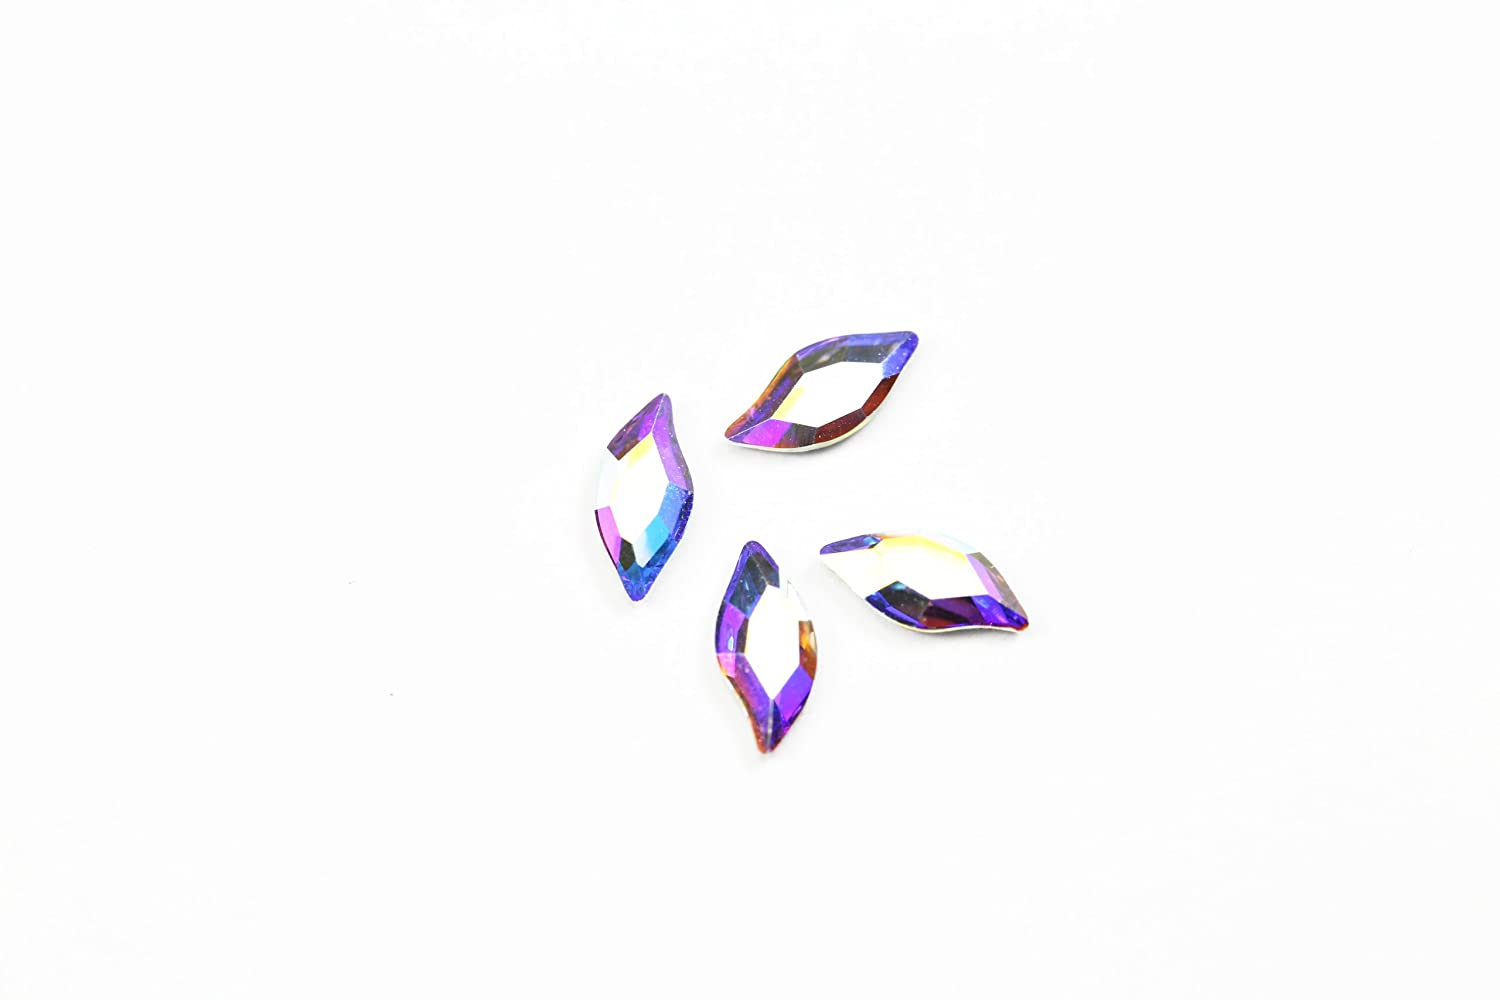 Cristalli Swarovski diamante foglia Flat Back Article 2797 – Small pack-crystal ab-8 x 4 mm-4 Swarovski Element